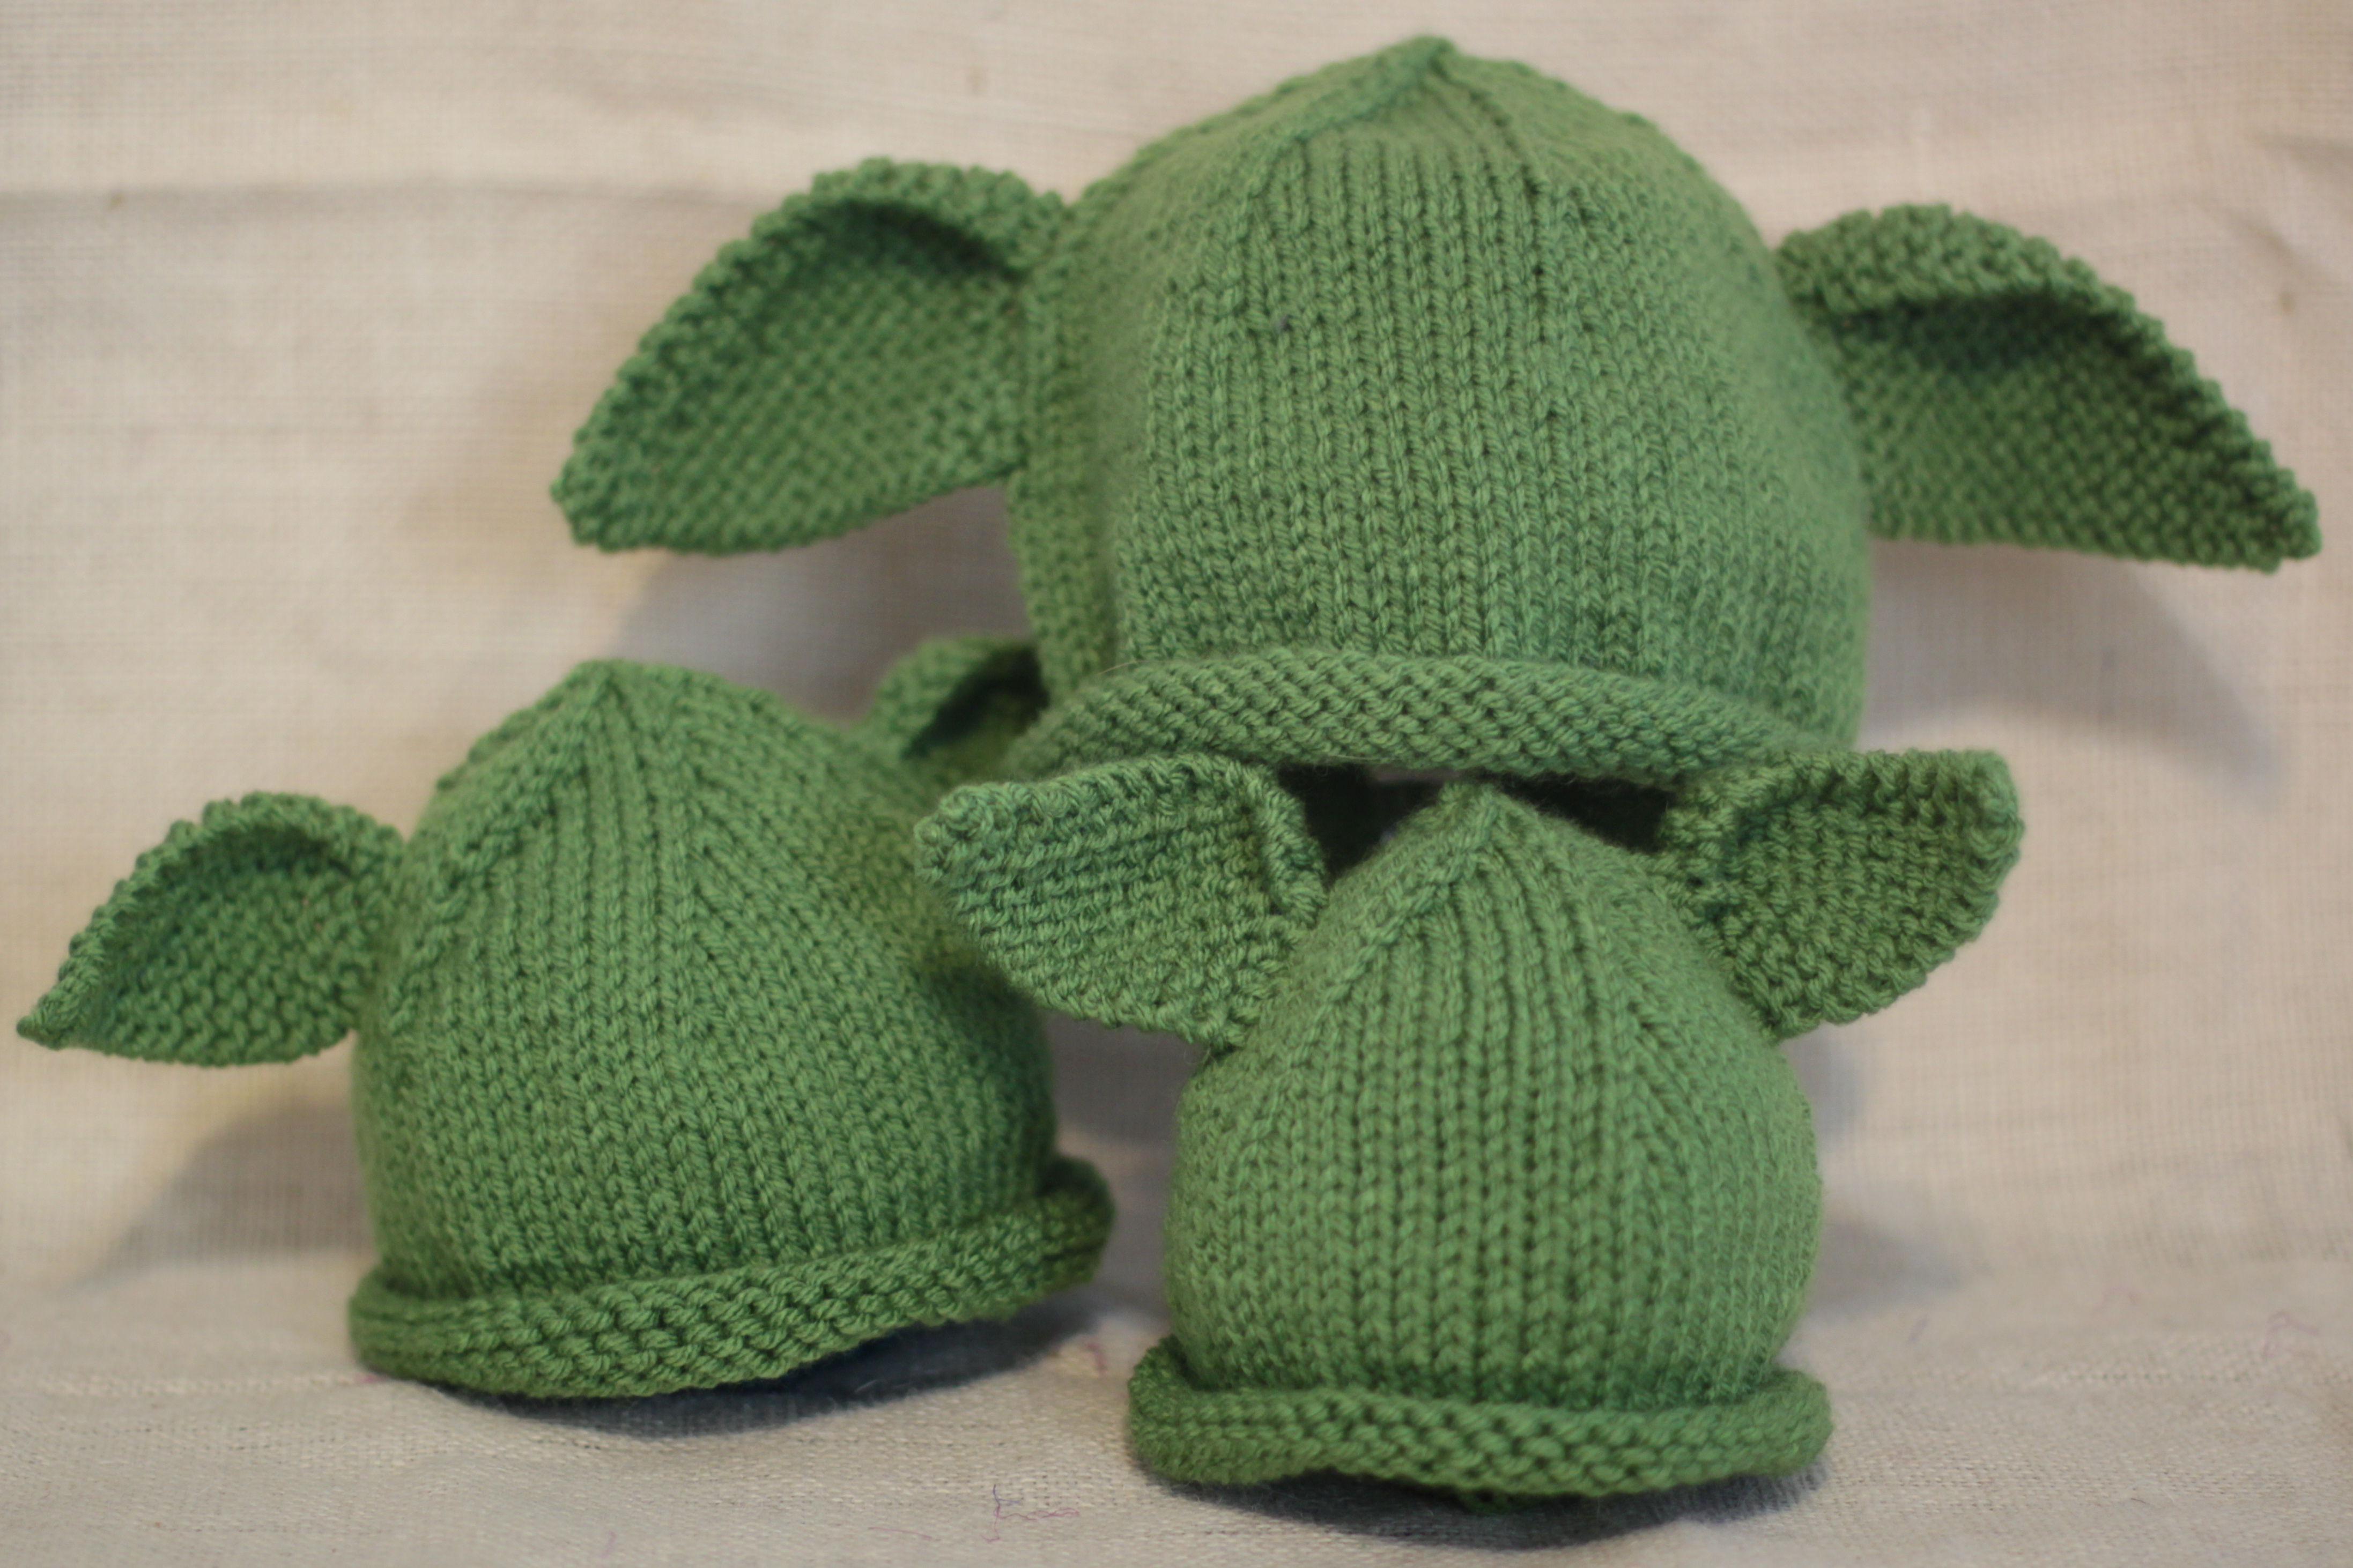 Discount Code For How To Knit A Baby Yoda Hat Inside 6d6a1 0a2a2